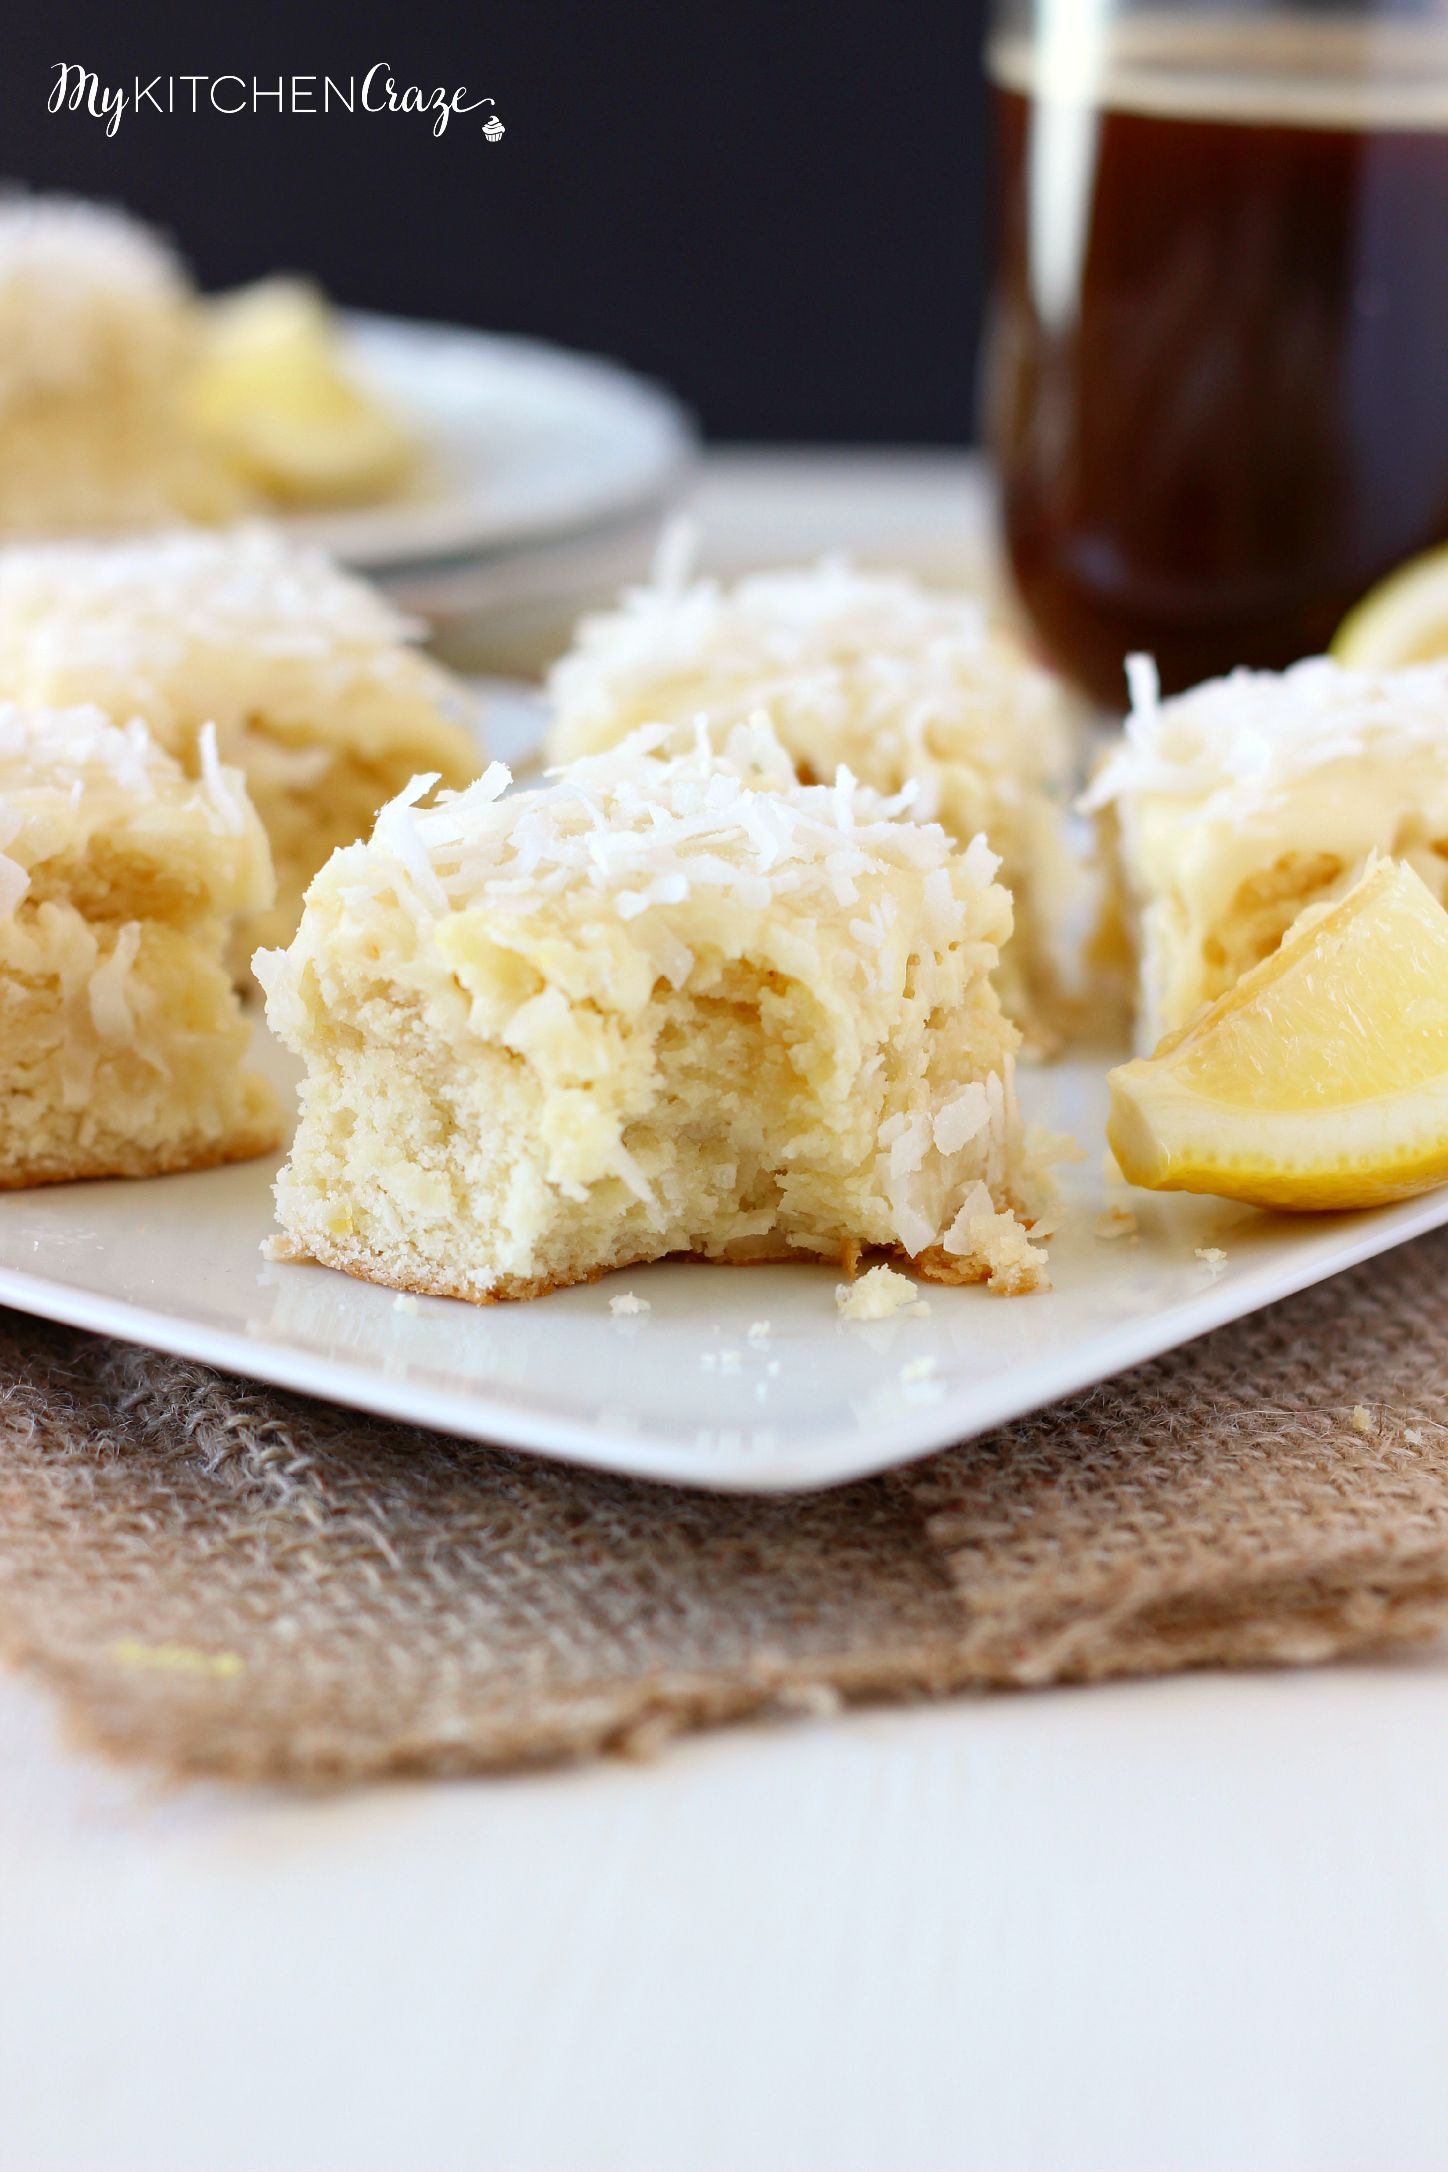 Coconut Lemon Blondies ~ mykitchencraze.com ~ Moist and flavorful coconut lemon blondies, frosted with a creamy white chocolate frosting. These blondies are great for any get together or just because. You'll love them!